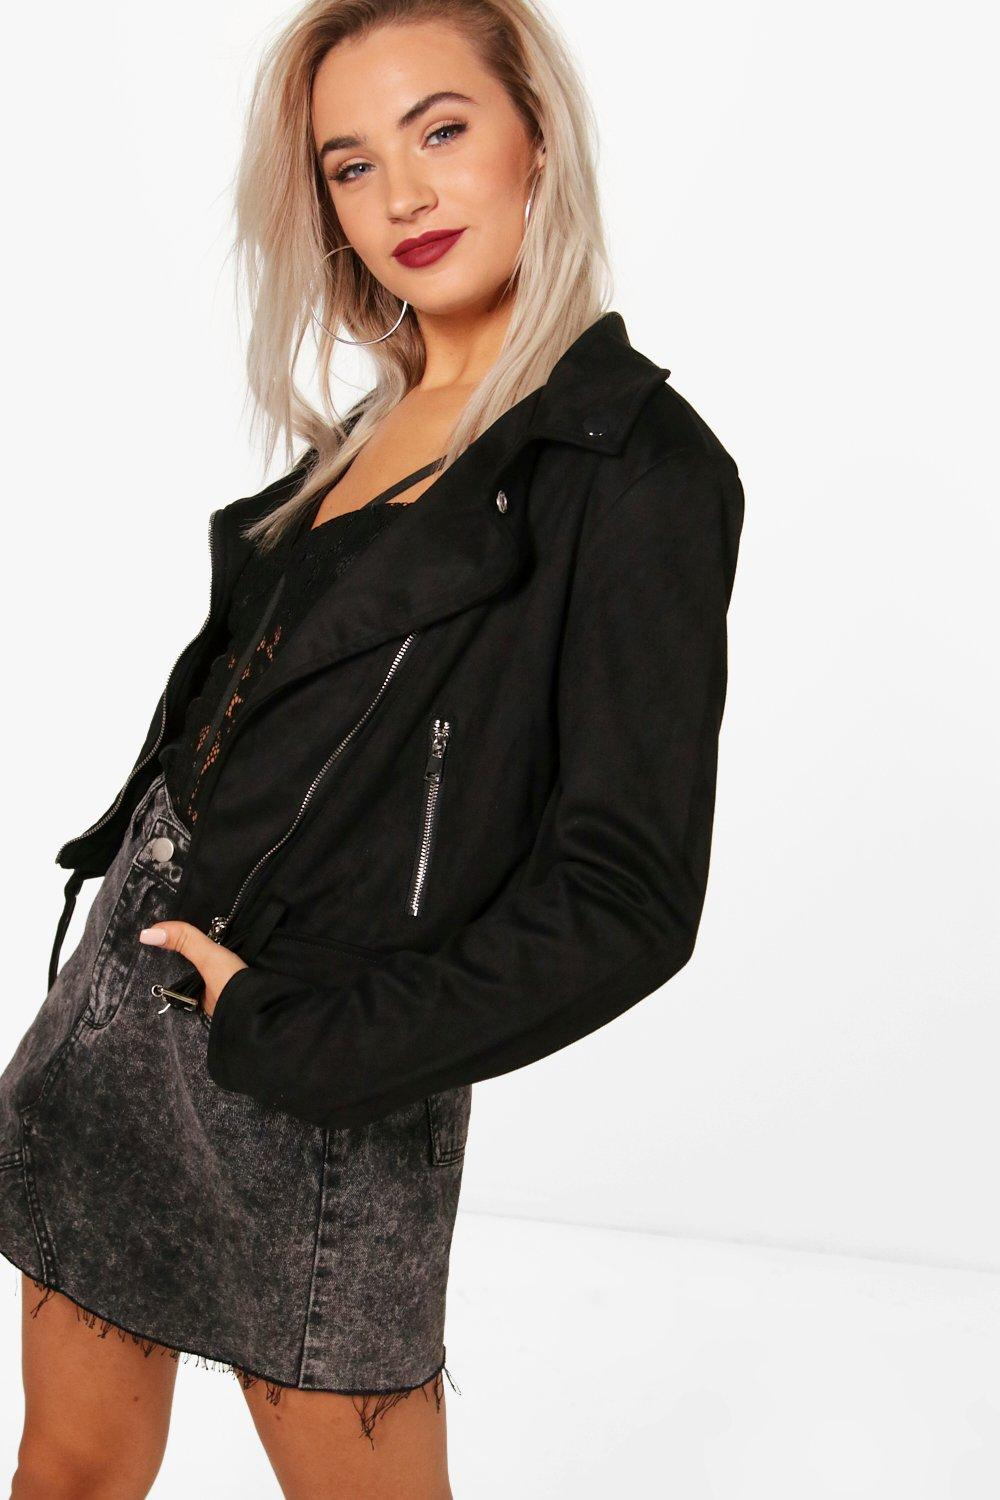 boohoo damen livia kurzes g rtel bikerjacke aus. Black Bedroom Furniture Sets. Home Design Ideas